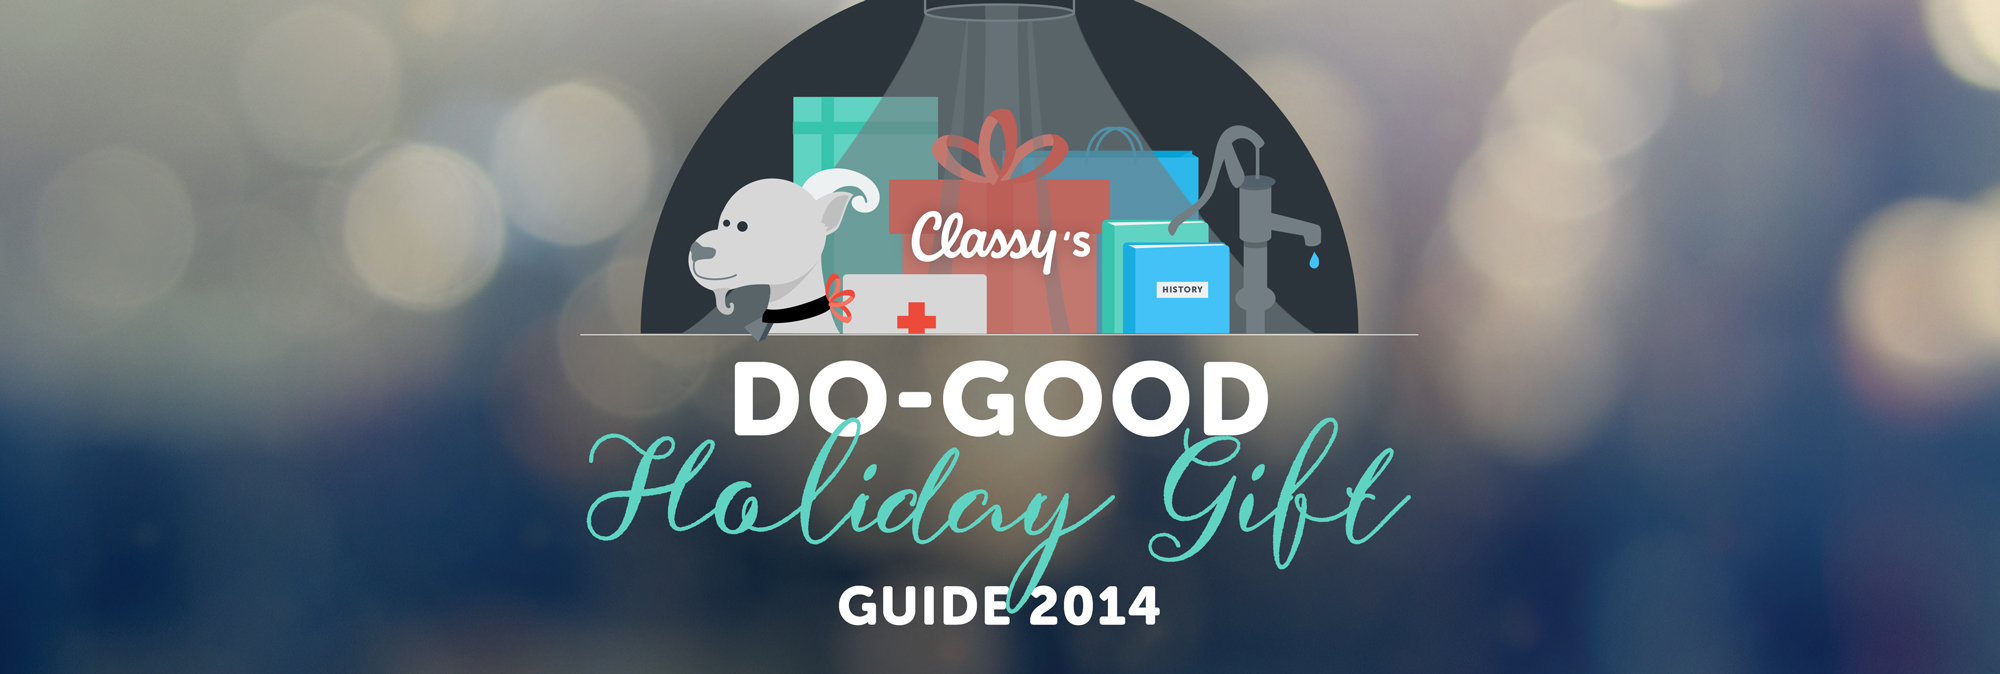 do-good holiday gift guide 2014